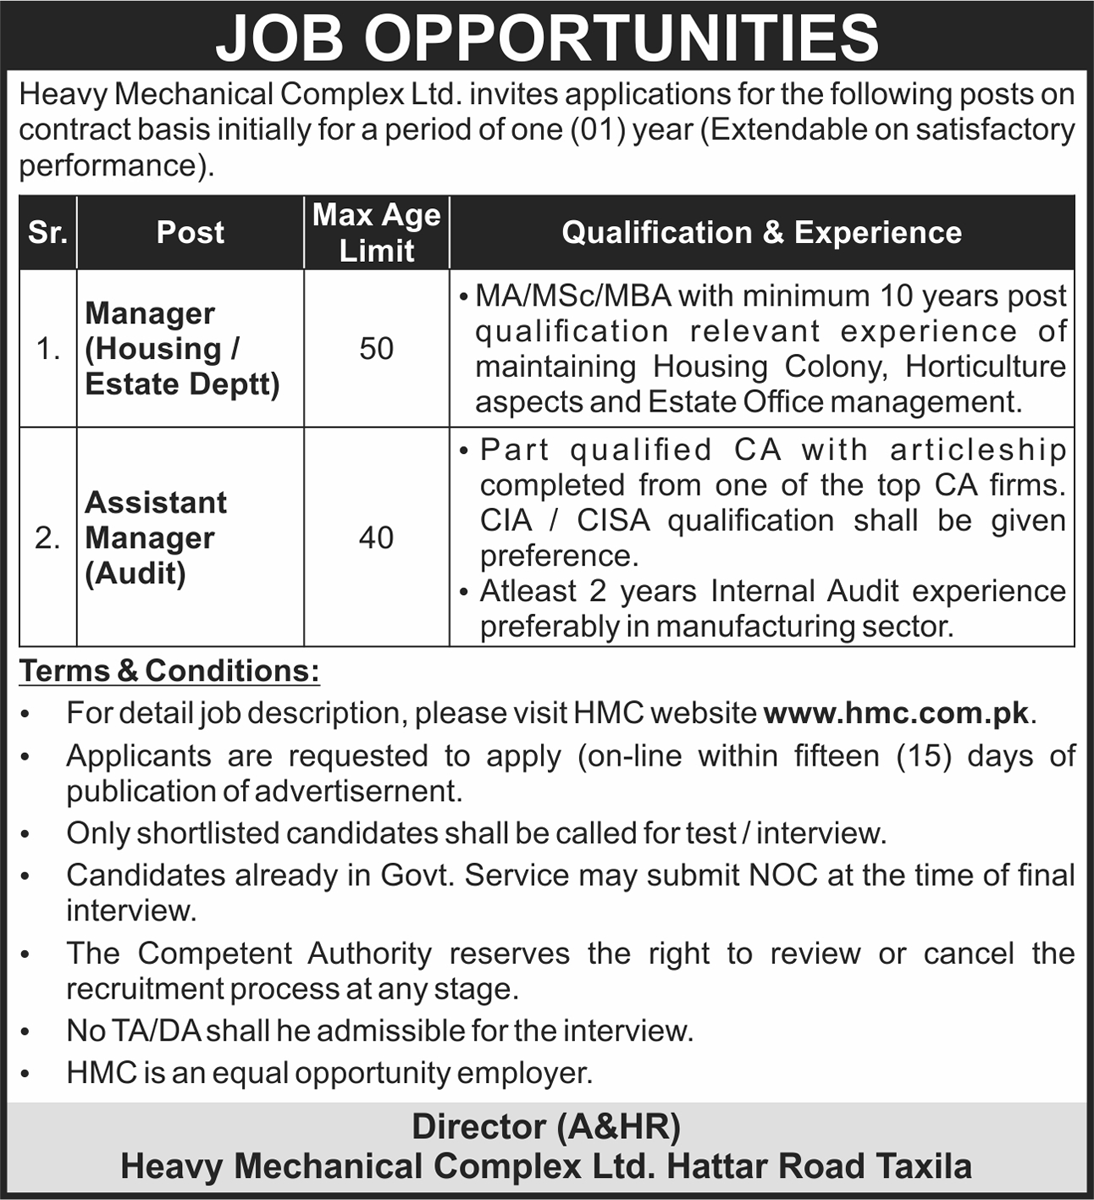 This page is about Heavy Mechanical Complex (HMC) Taxila Jobs May 2021 Latest Advertisment. Heavy Mechanical Complex (HMC) Taxila invites applications for the posts announced on a contact / permanent basis from suitable candidates for the following positions such as Manager (Housing/Estate Deptt), Assistant Manager (Audit). These vacancies are published in Nawaiwaqt Newspaper, one of the best News paper of Pakistan. This advertisement has pulibhsed on 09 May 2021 and Last Date to apply is 23 May 2021.